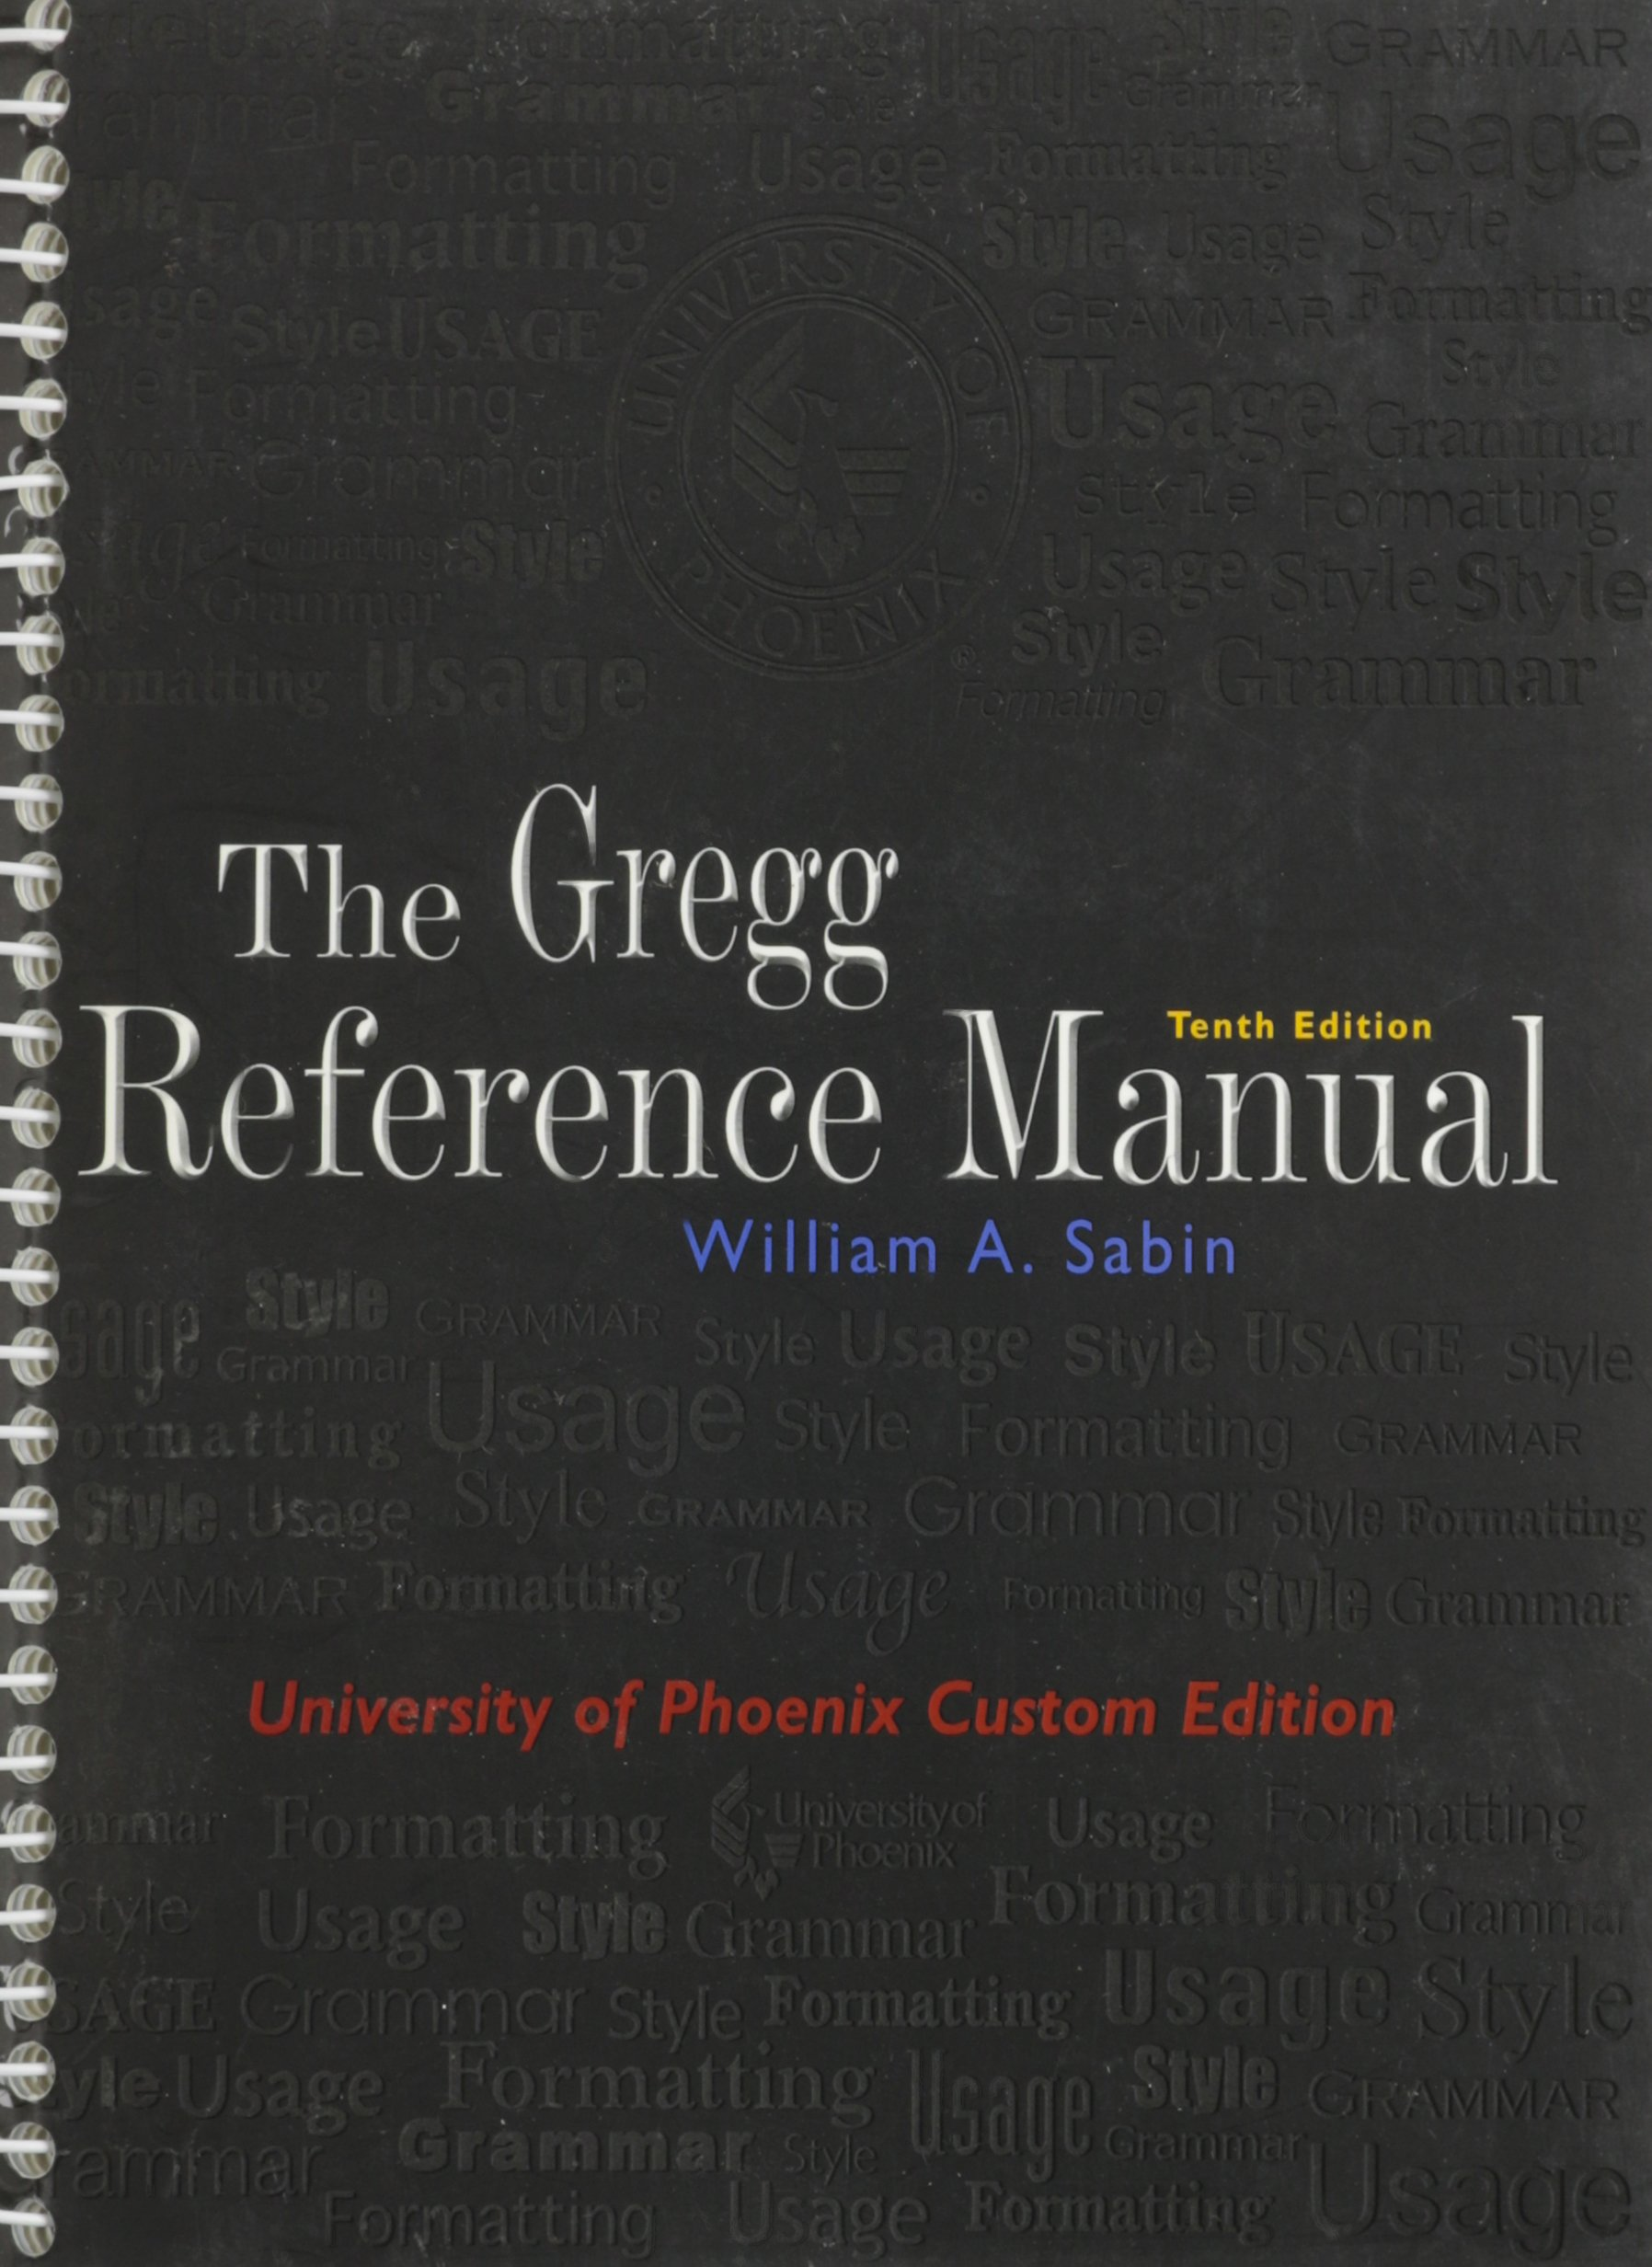 The Gregg Reference Manual (University of Phoenix Custom Edition): William  A. Sabin: 9780073133485: Books - Amazon.ca